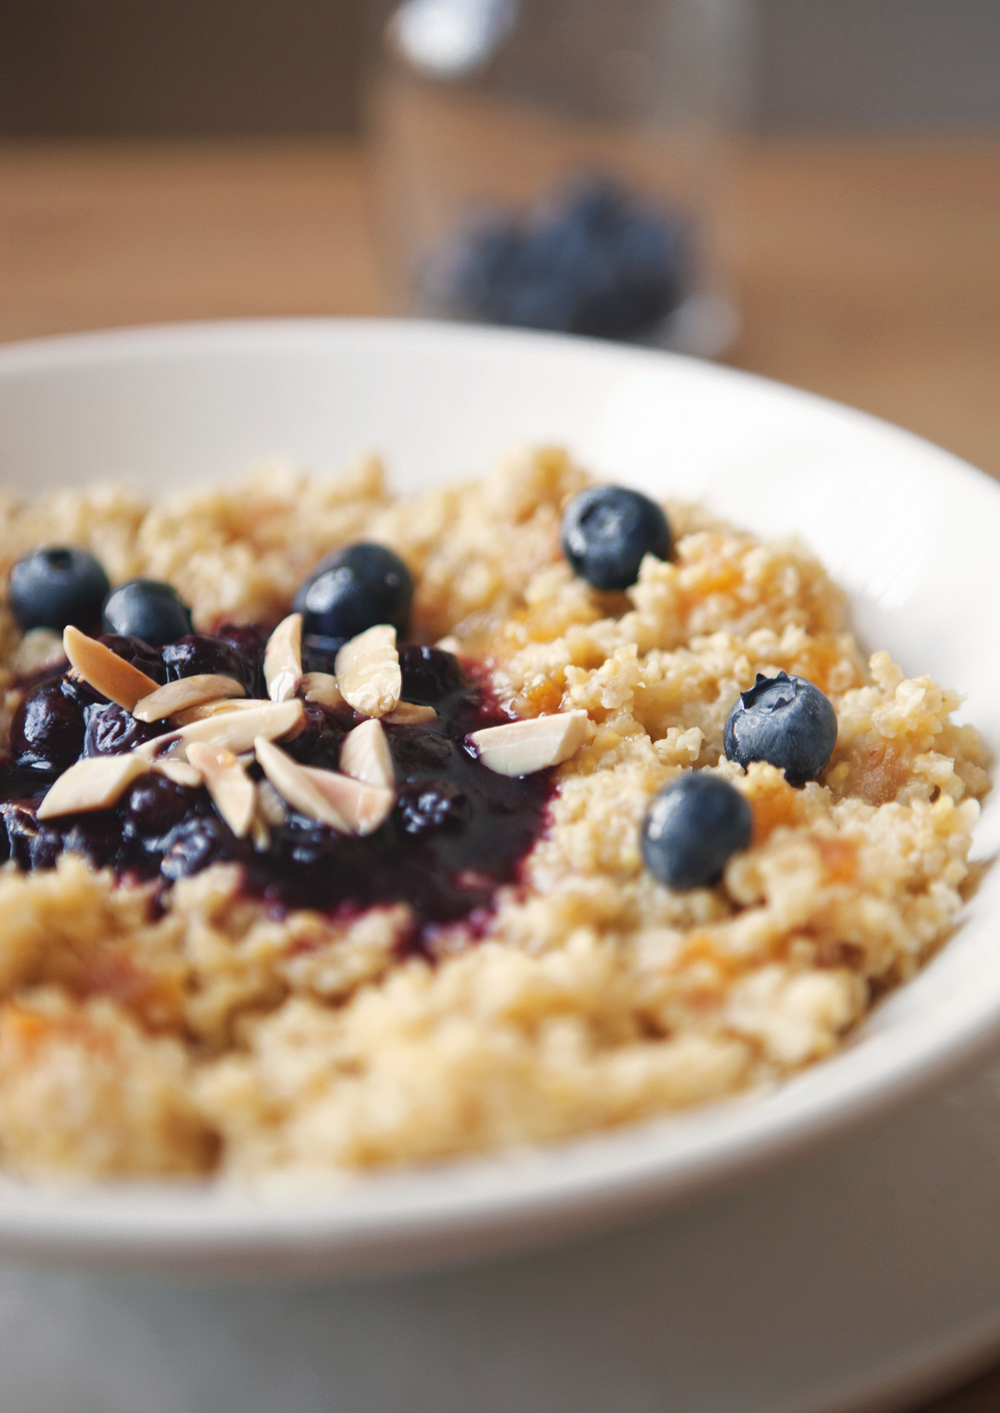 Honey-Apricot-Millet-with-Blueberry-Compote-and-Toasted-Almonds_0072.jpg